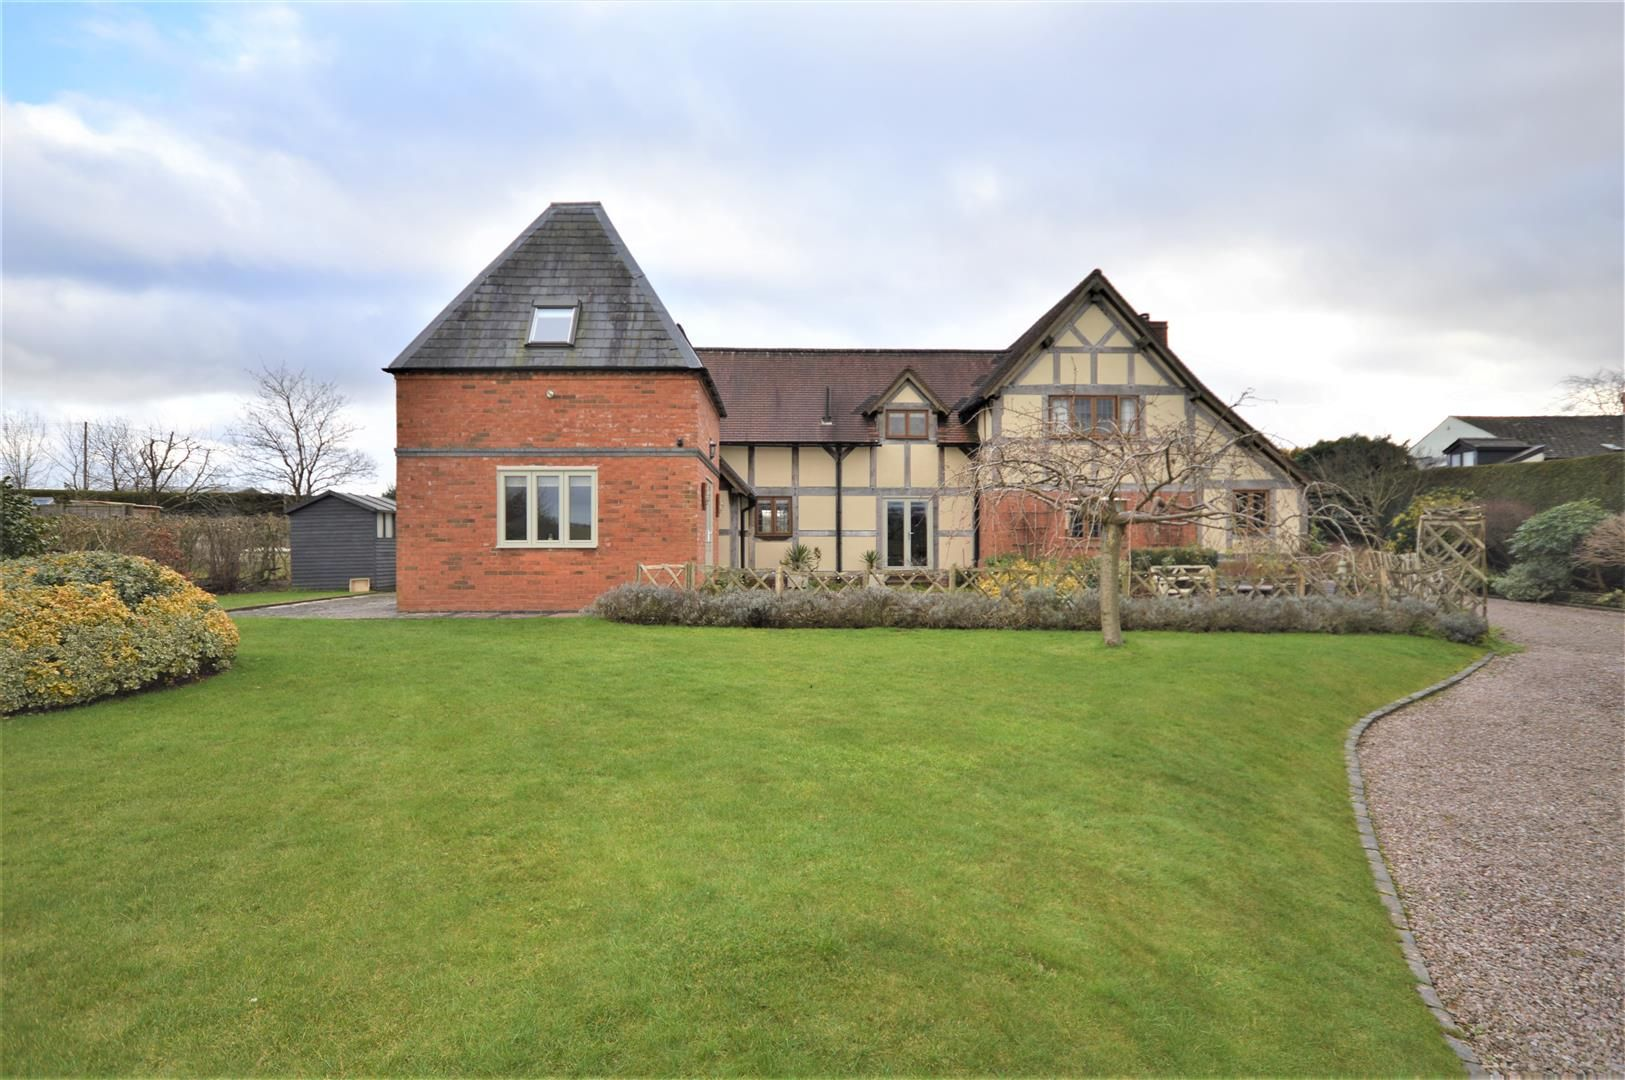 4 bed detached for sale in Marden  - Property Image 29